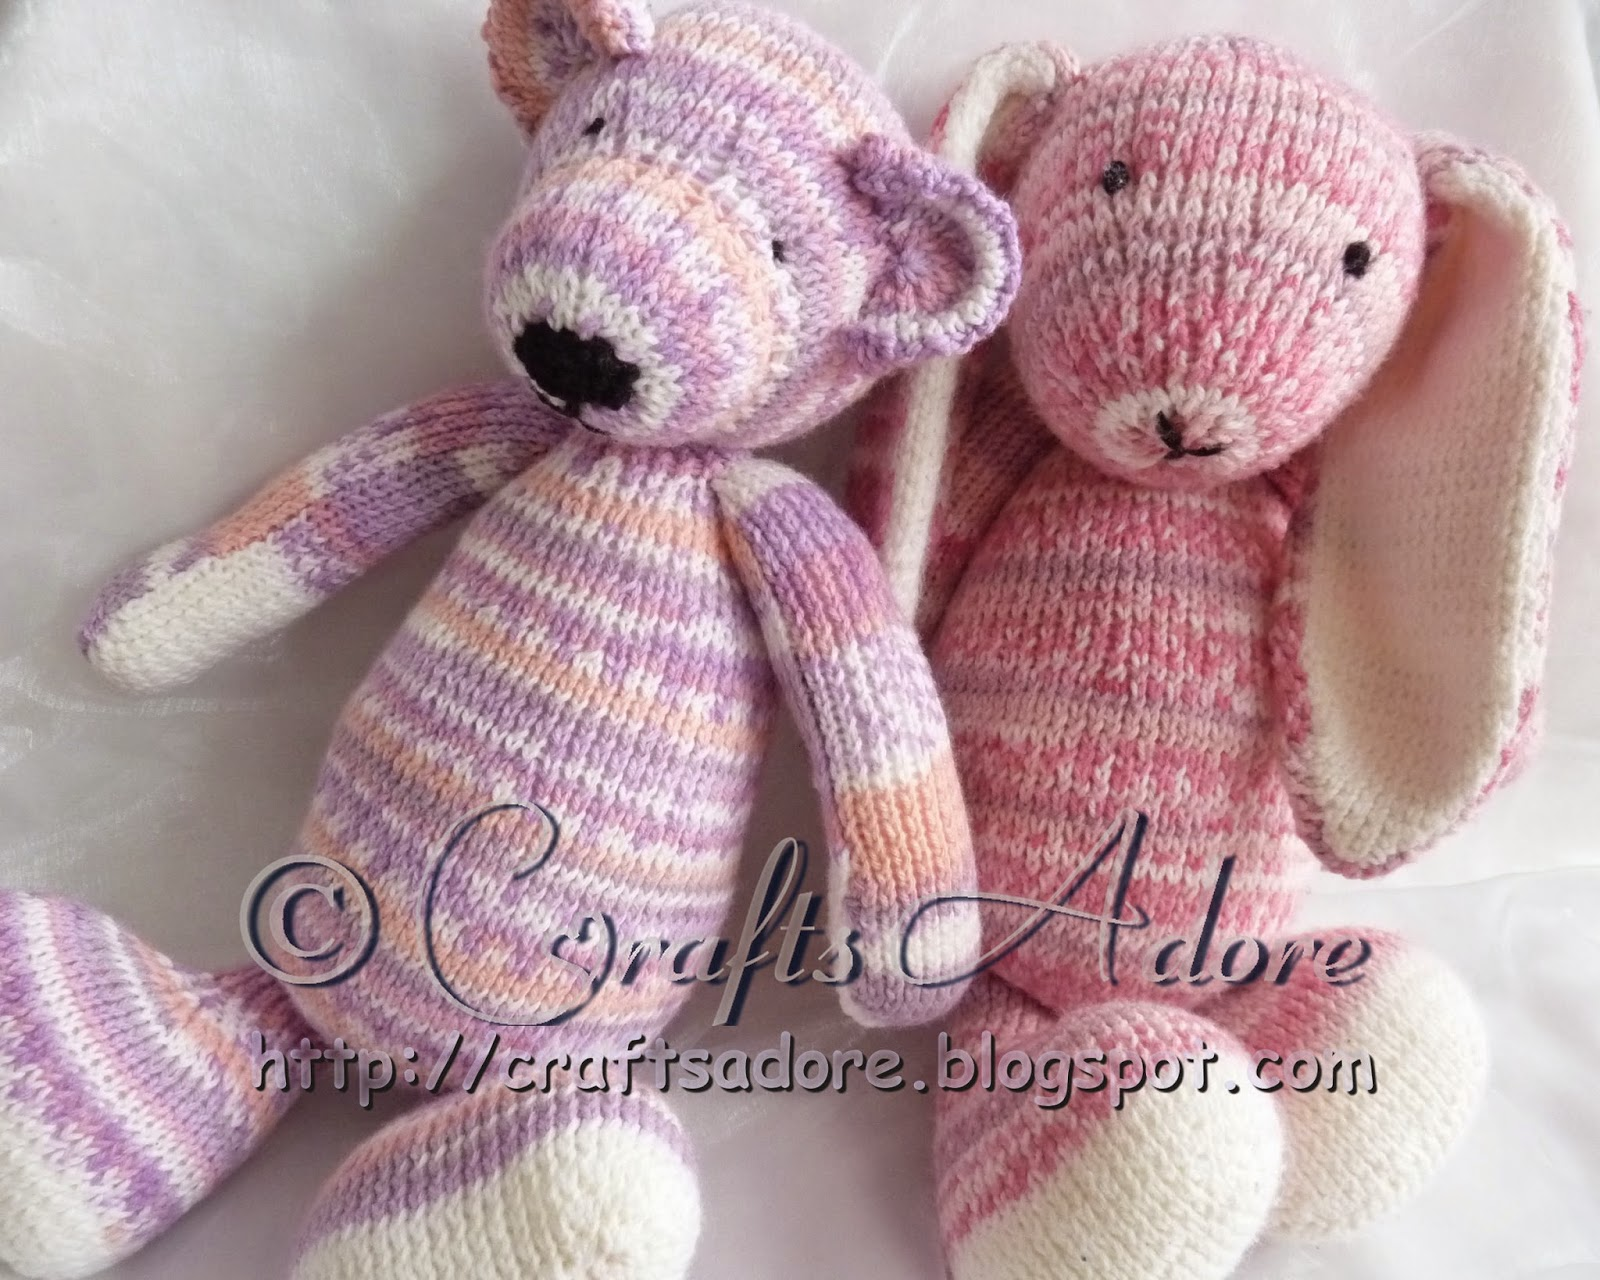 CraftsAdore: Adorable Knitted Sirdar Snuggly Teddy Bear